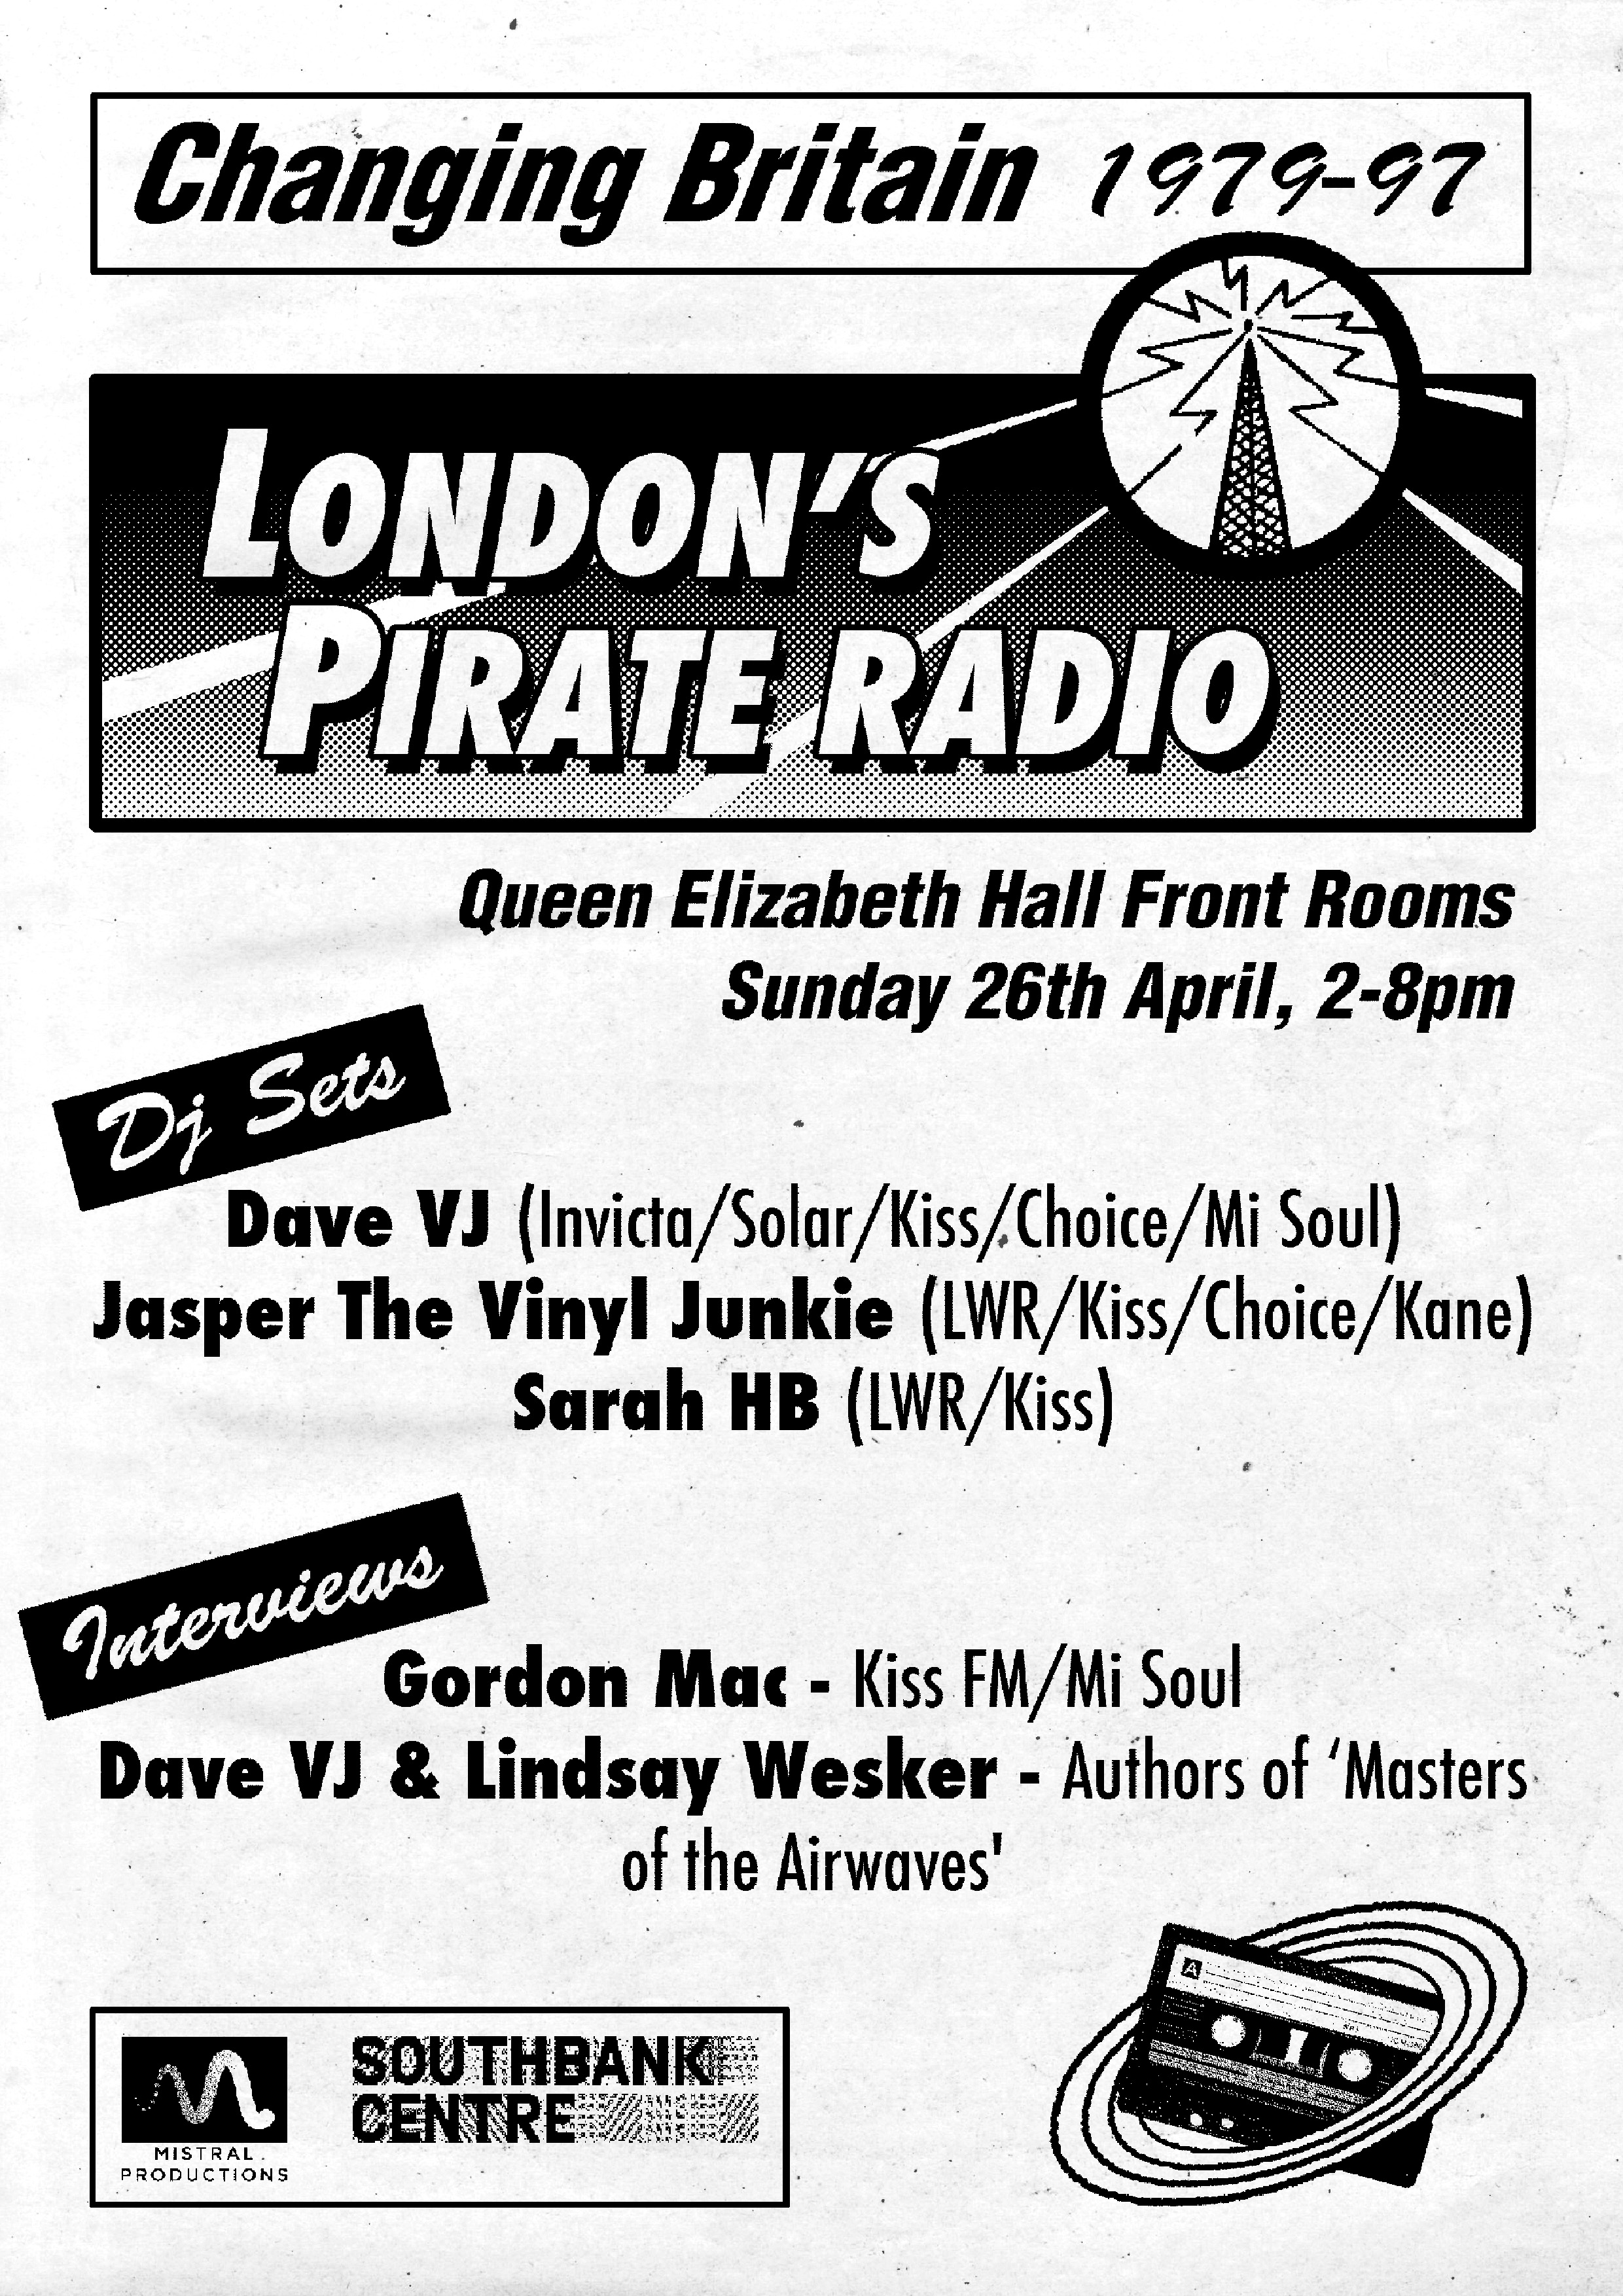 The flyer for the event, designed by adam bletchly.